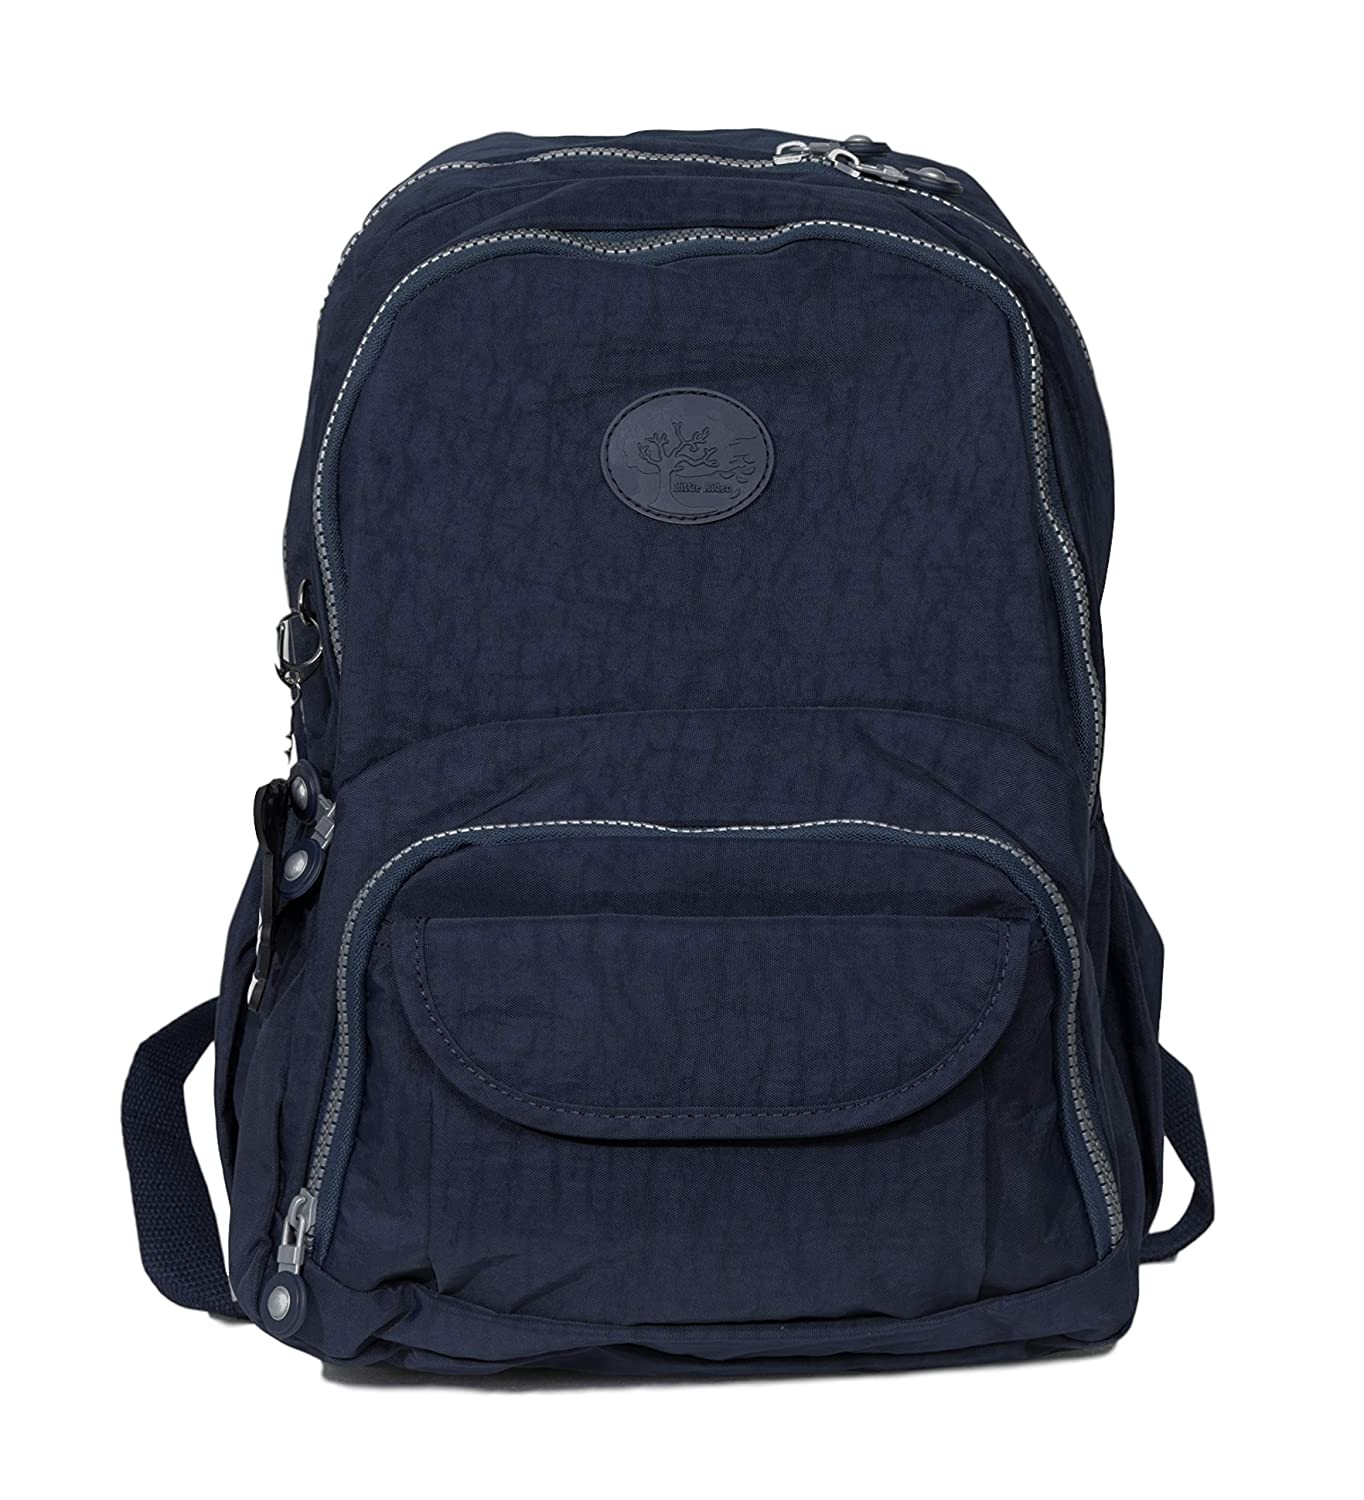 LITTLE AIDEN Medium Size Travel Nylon Casual Daypack School Backpack with Small Laptop Tablet Compartment and Trolley Strap Sleeve for Travel for Men and Women Navy Blue